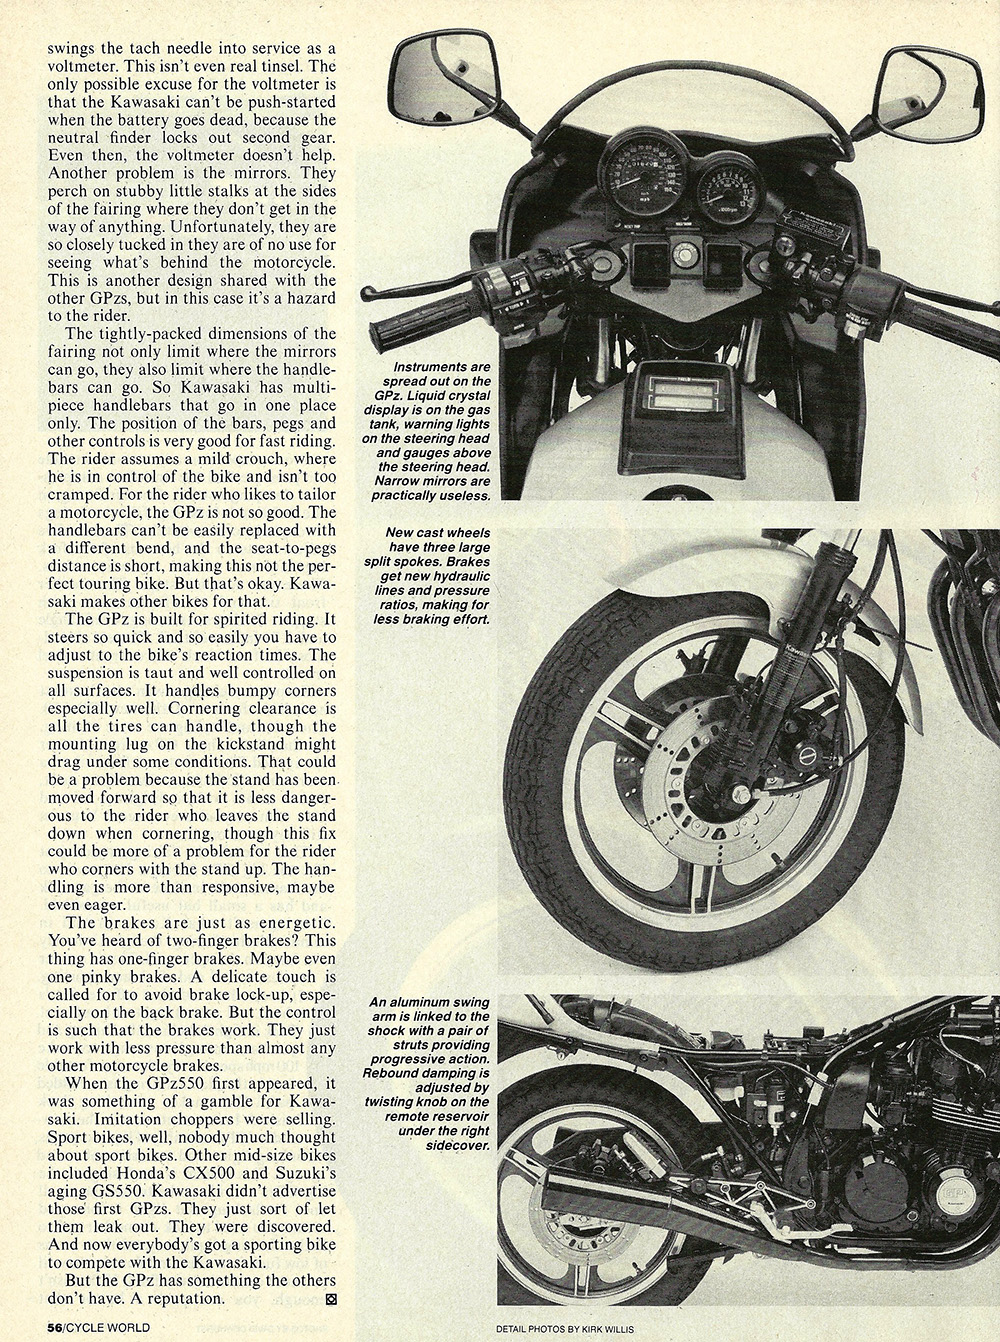 1984 Kawasaki GPz550 road test 05.jpg